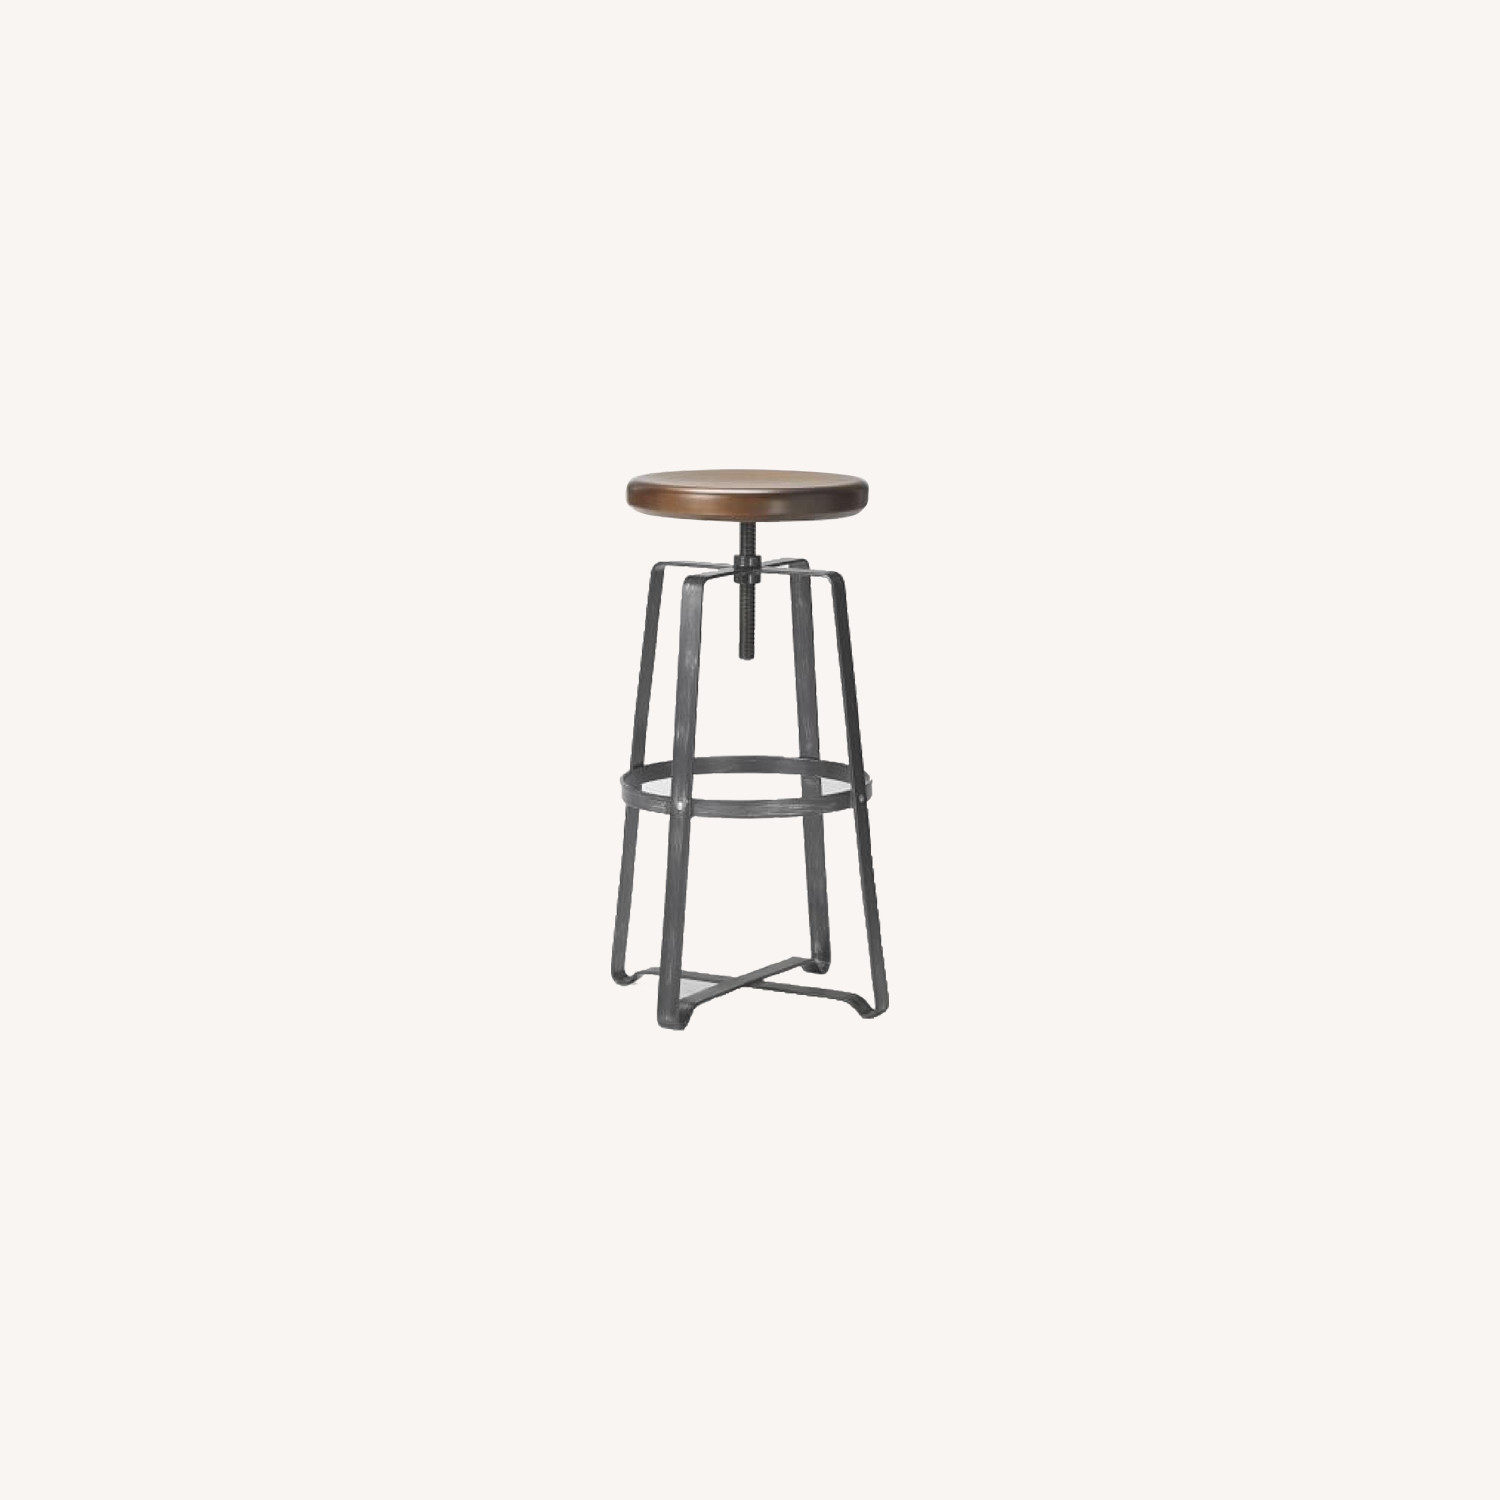 West Elm Adjustable Industrial Wood Counter Stools